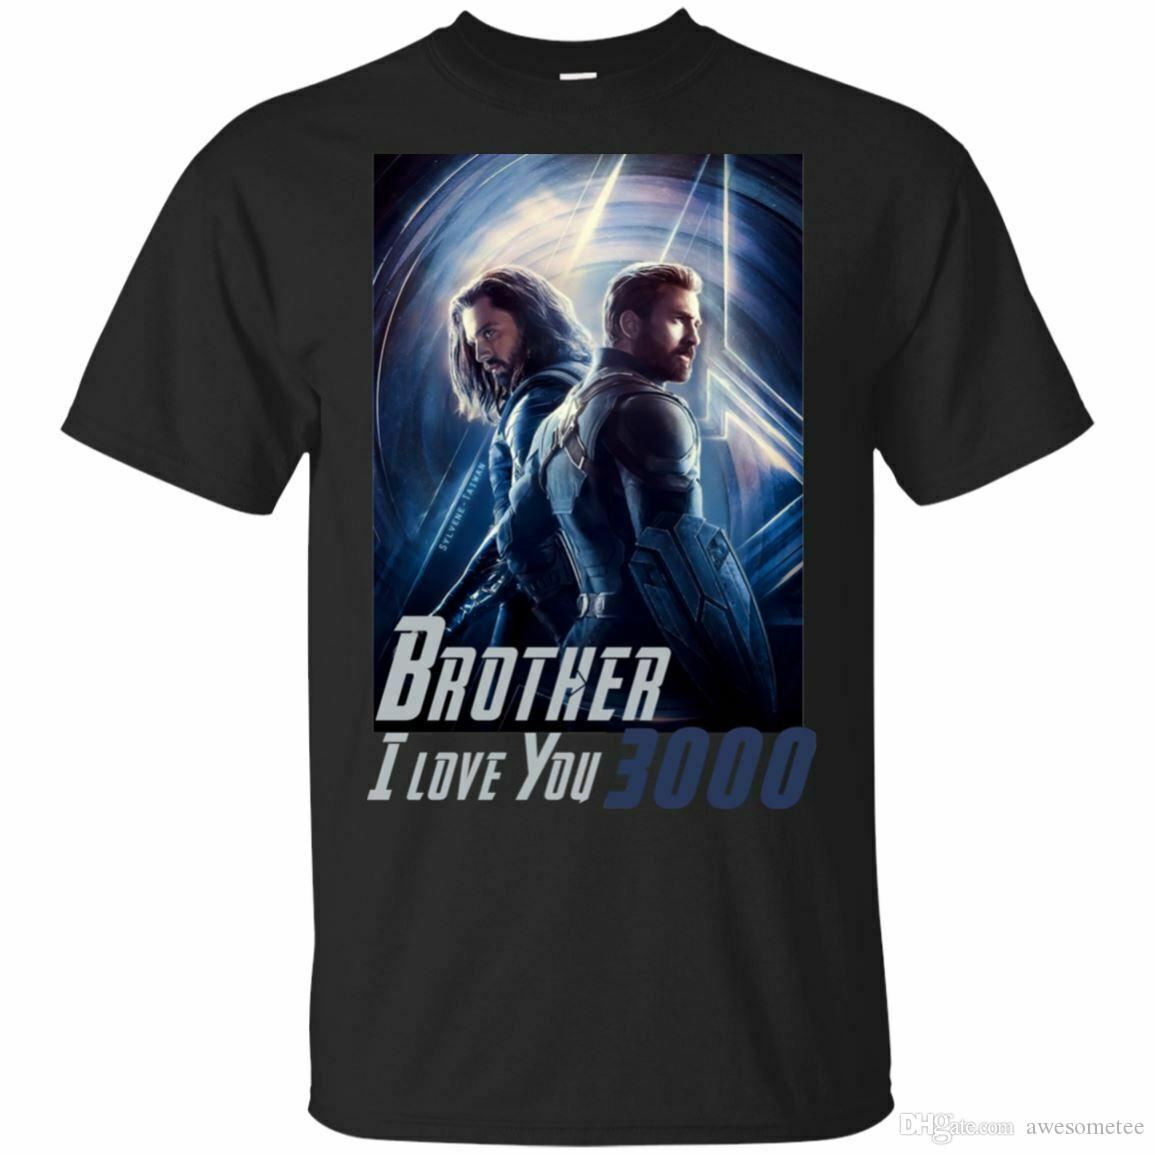 908c166e Bucky Barnes Captain America Brothers I Love You 3000 Quotes T Shirt Gifts  T Shirt S Tees Shirts From Awesometee, $11.17| DHgate.Com